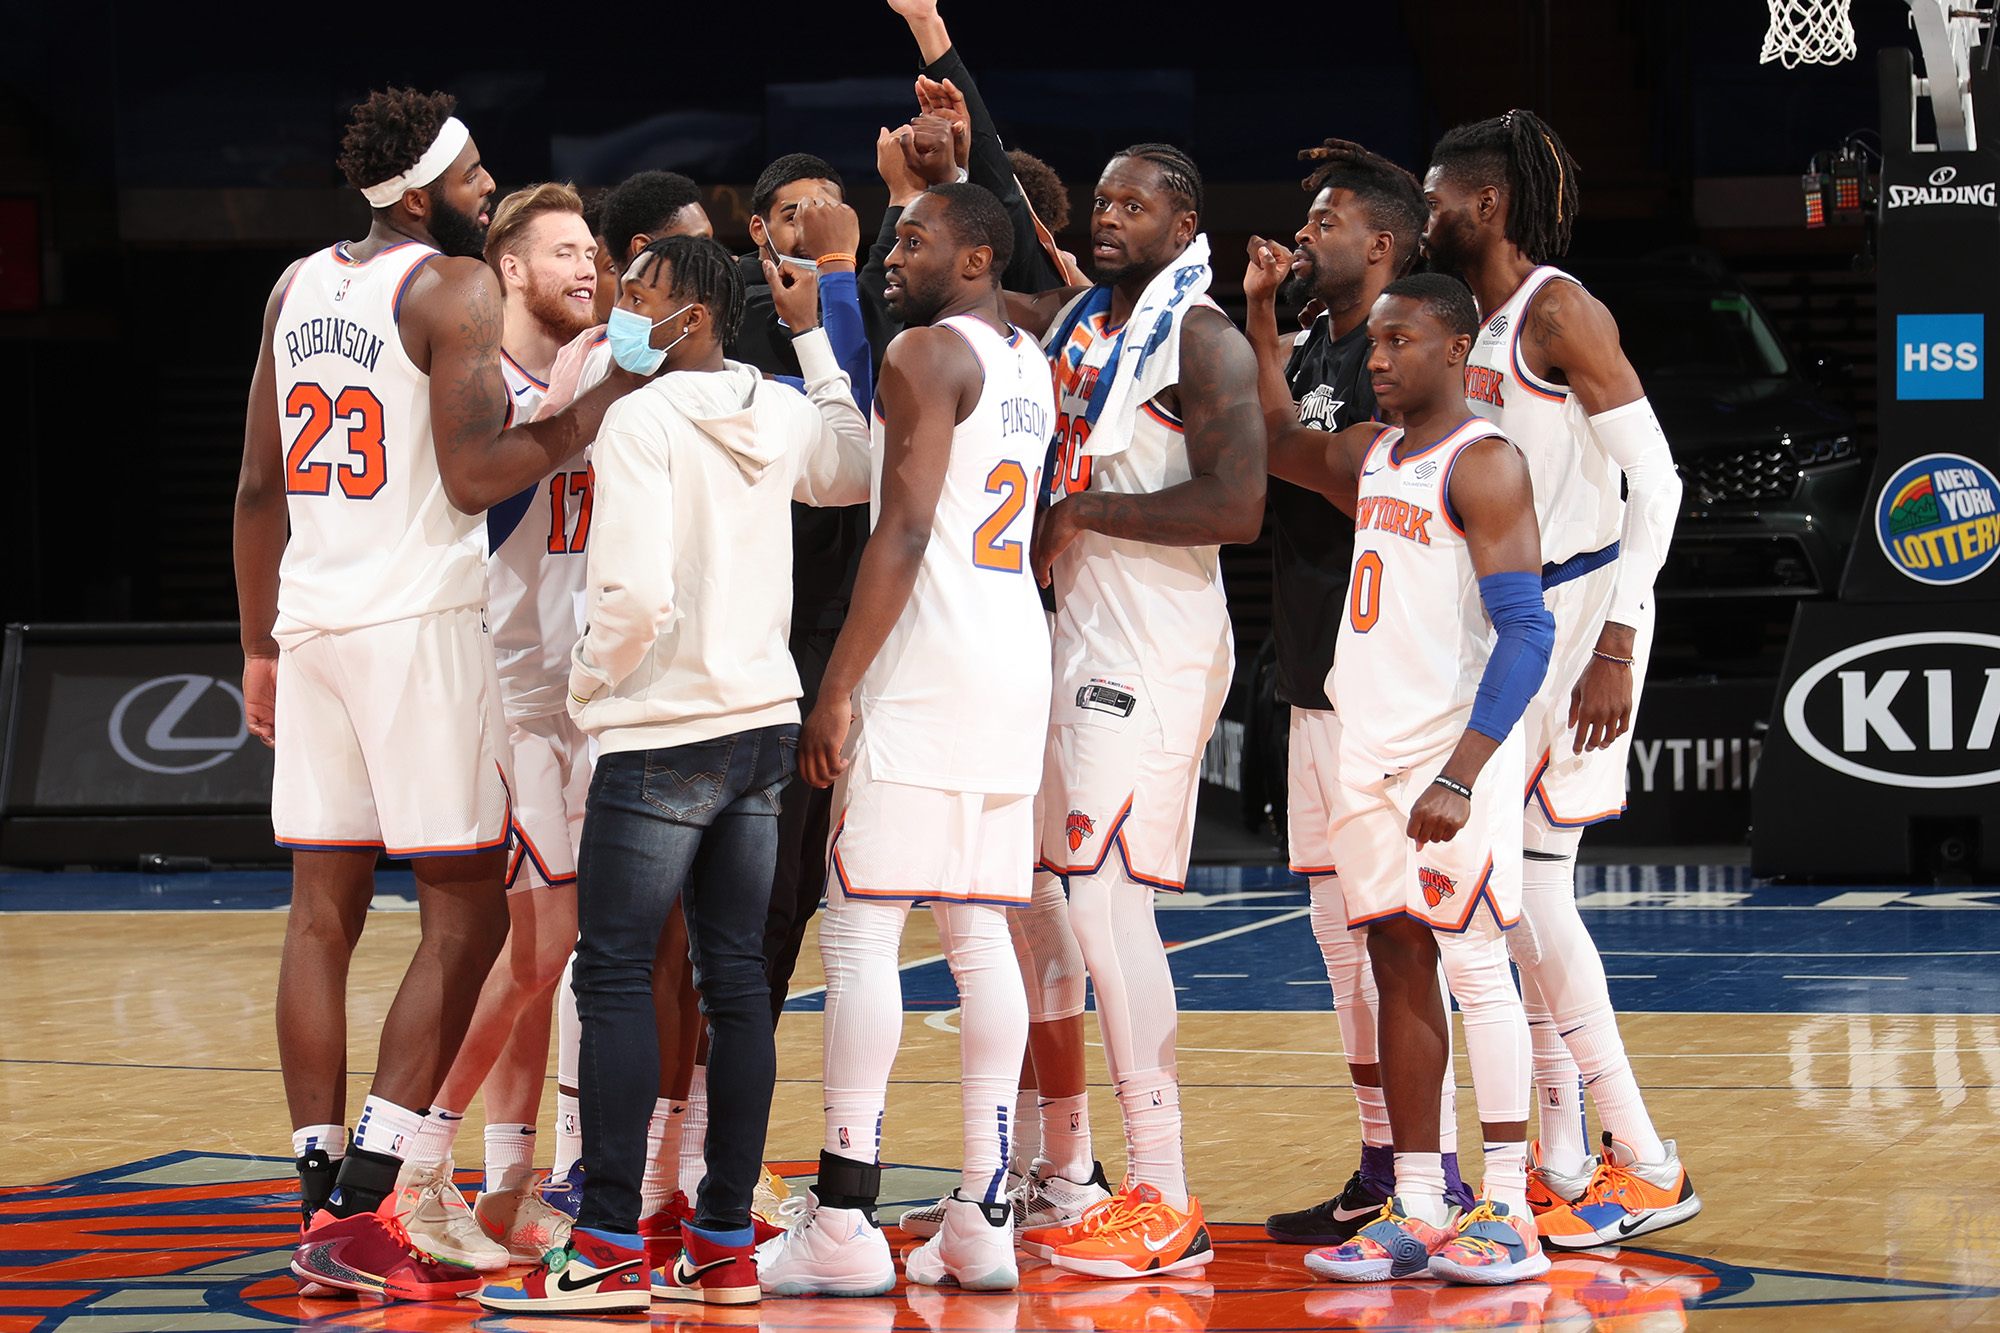 The Knicks needed this unexpected demolition of Bucks